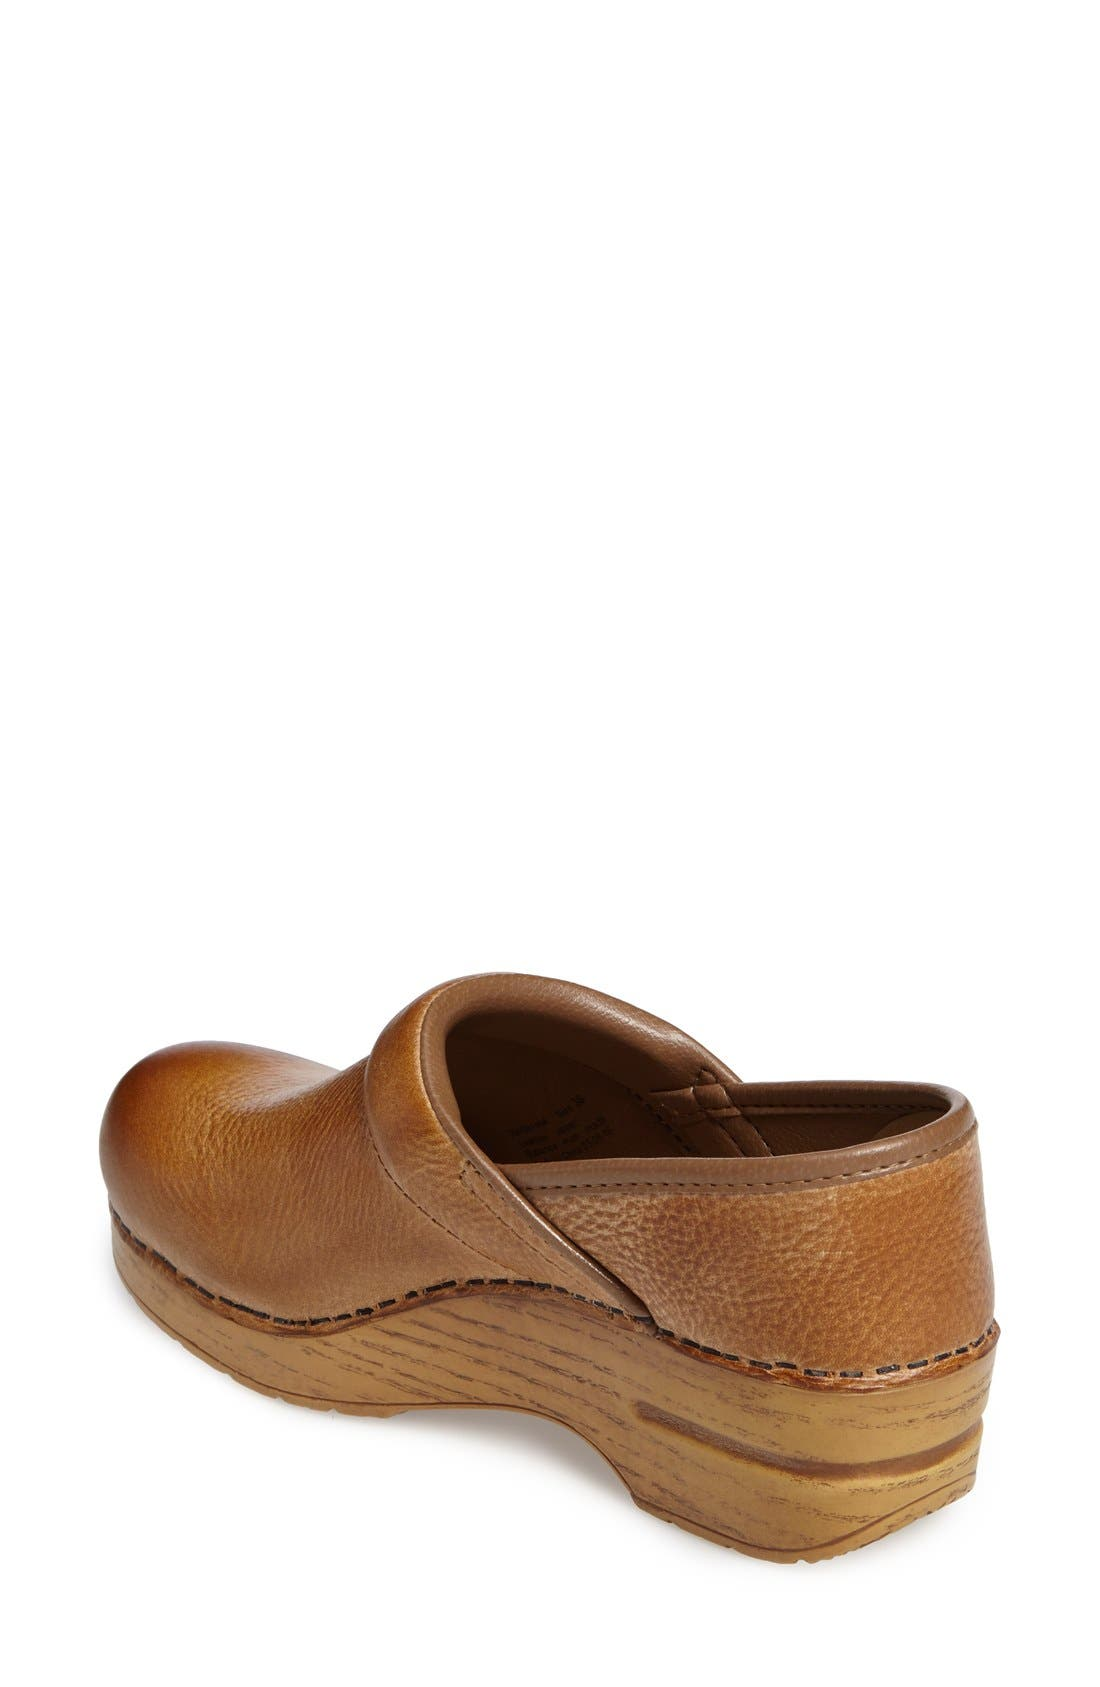 Distressed Professional Clog,                             Alternate thumbnail 5, color,                             HONEY LEATHER